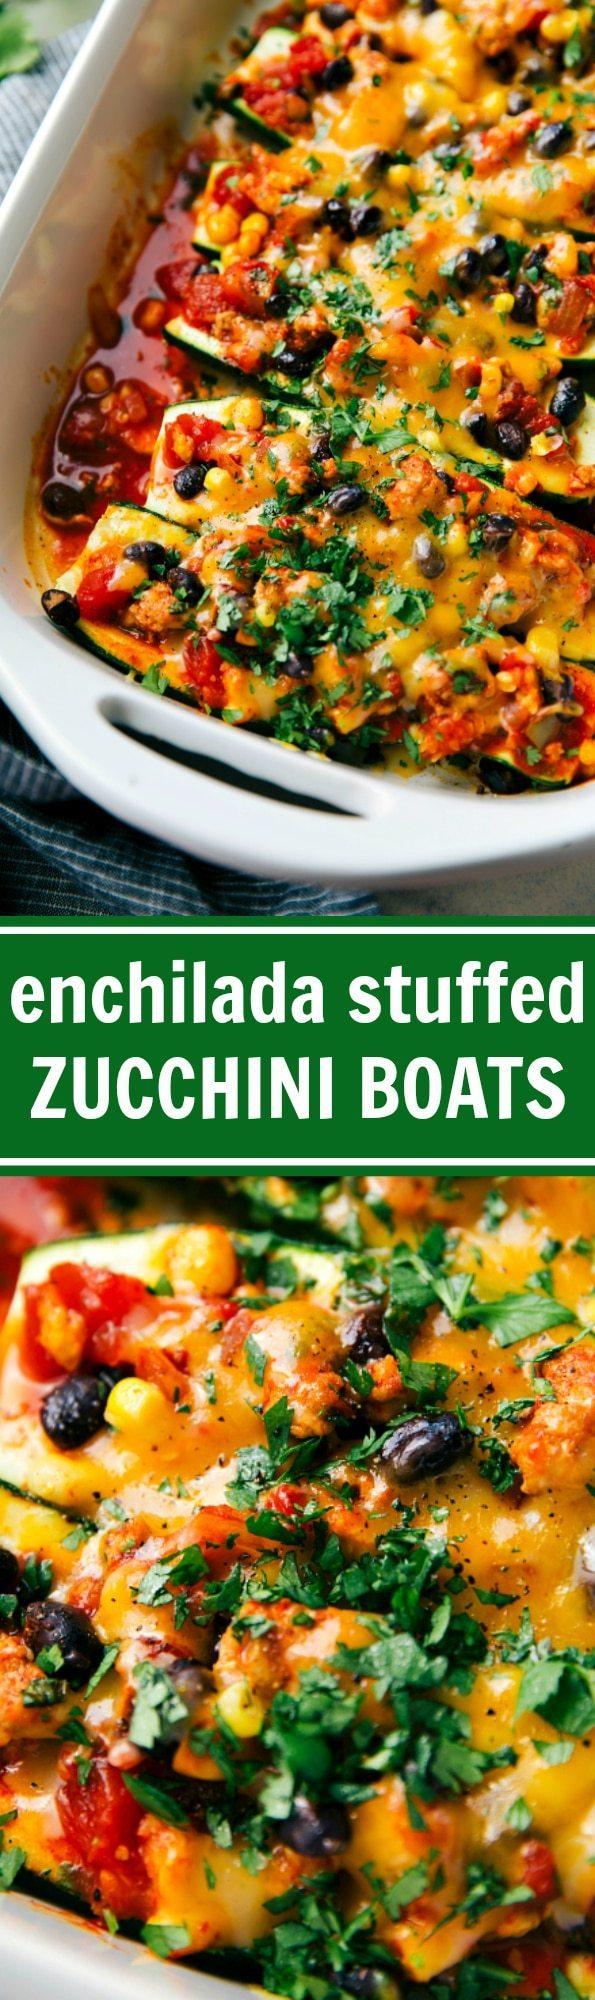 Mexican ground turkey enchilada stuffed zucchini boats bursting with flavor and tons of good-for-you ingredients! Recipe from chelseasmessyapron.com